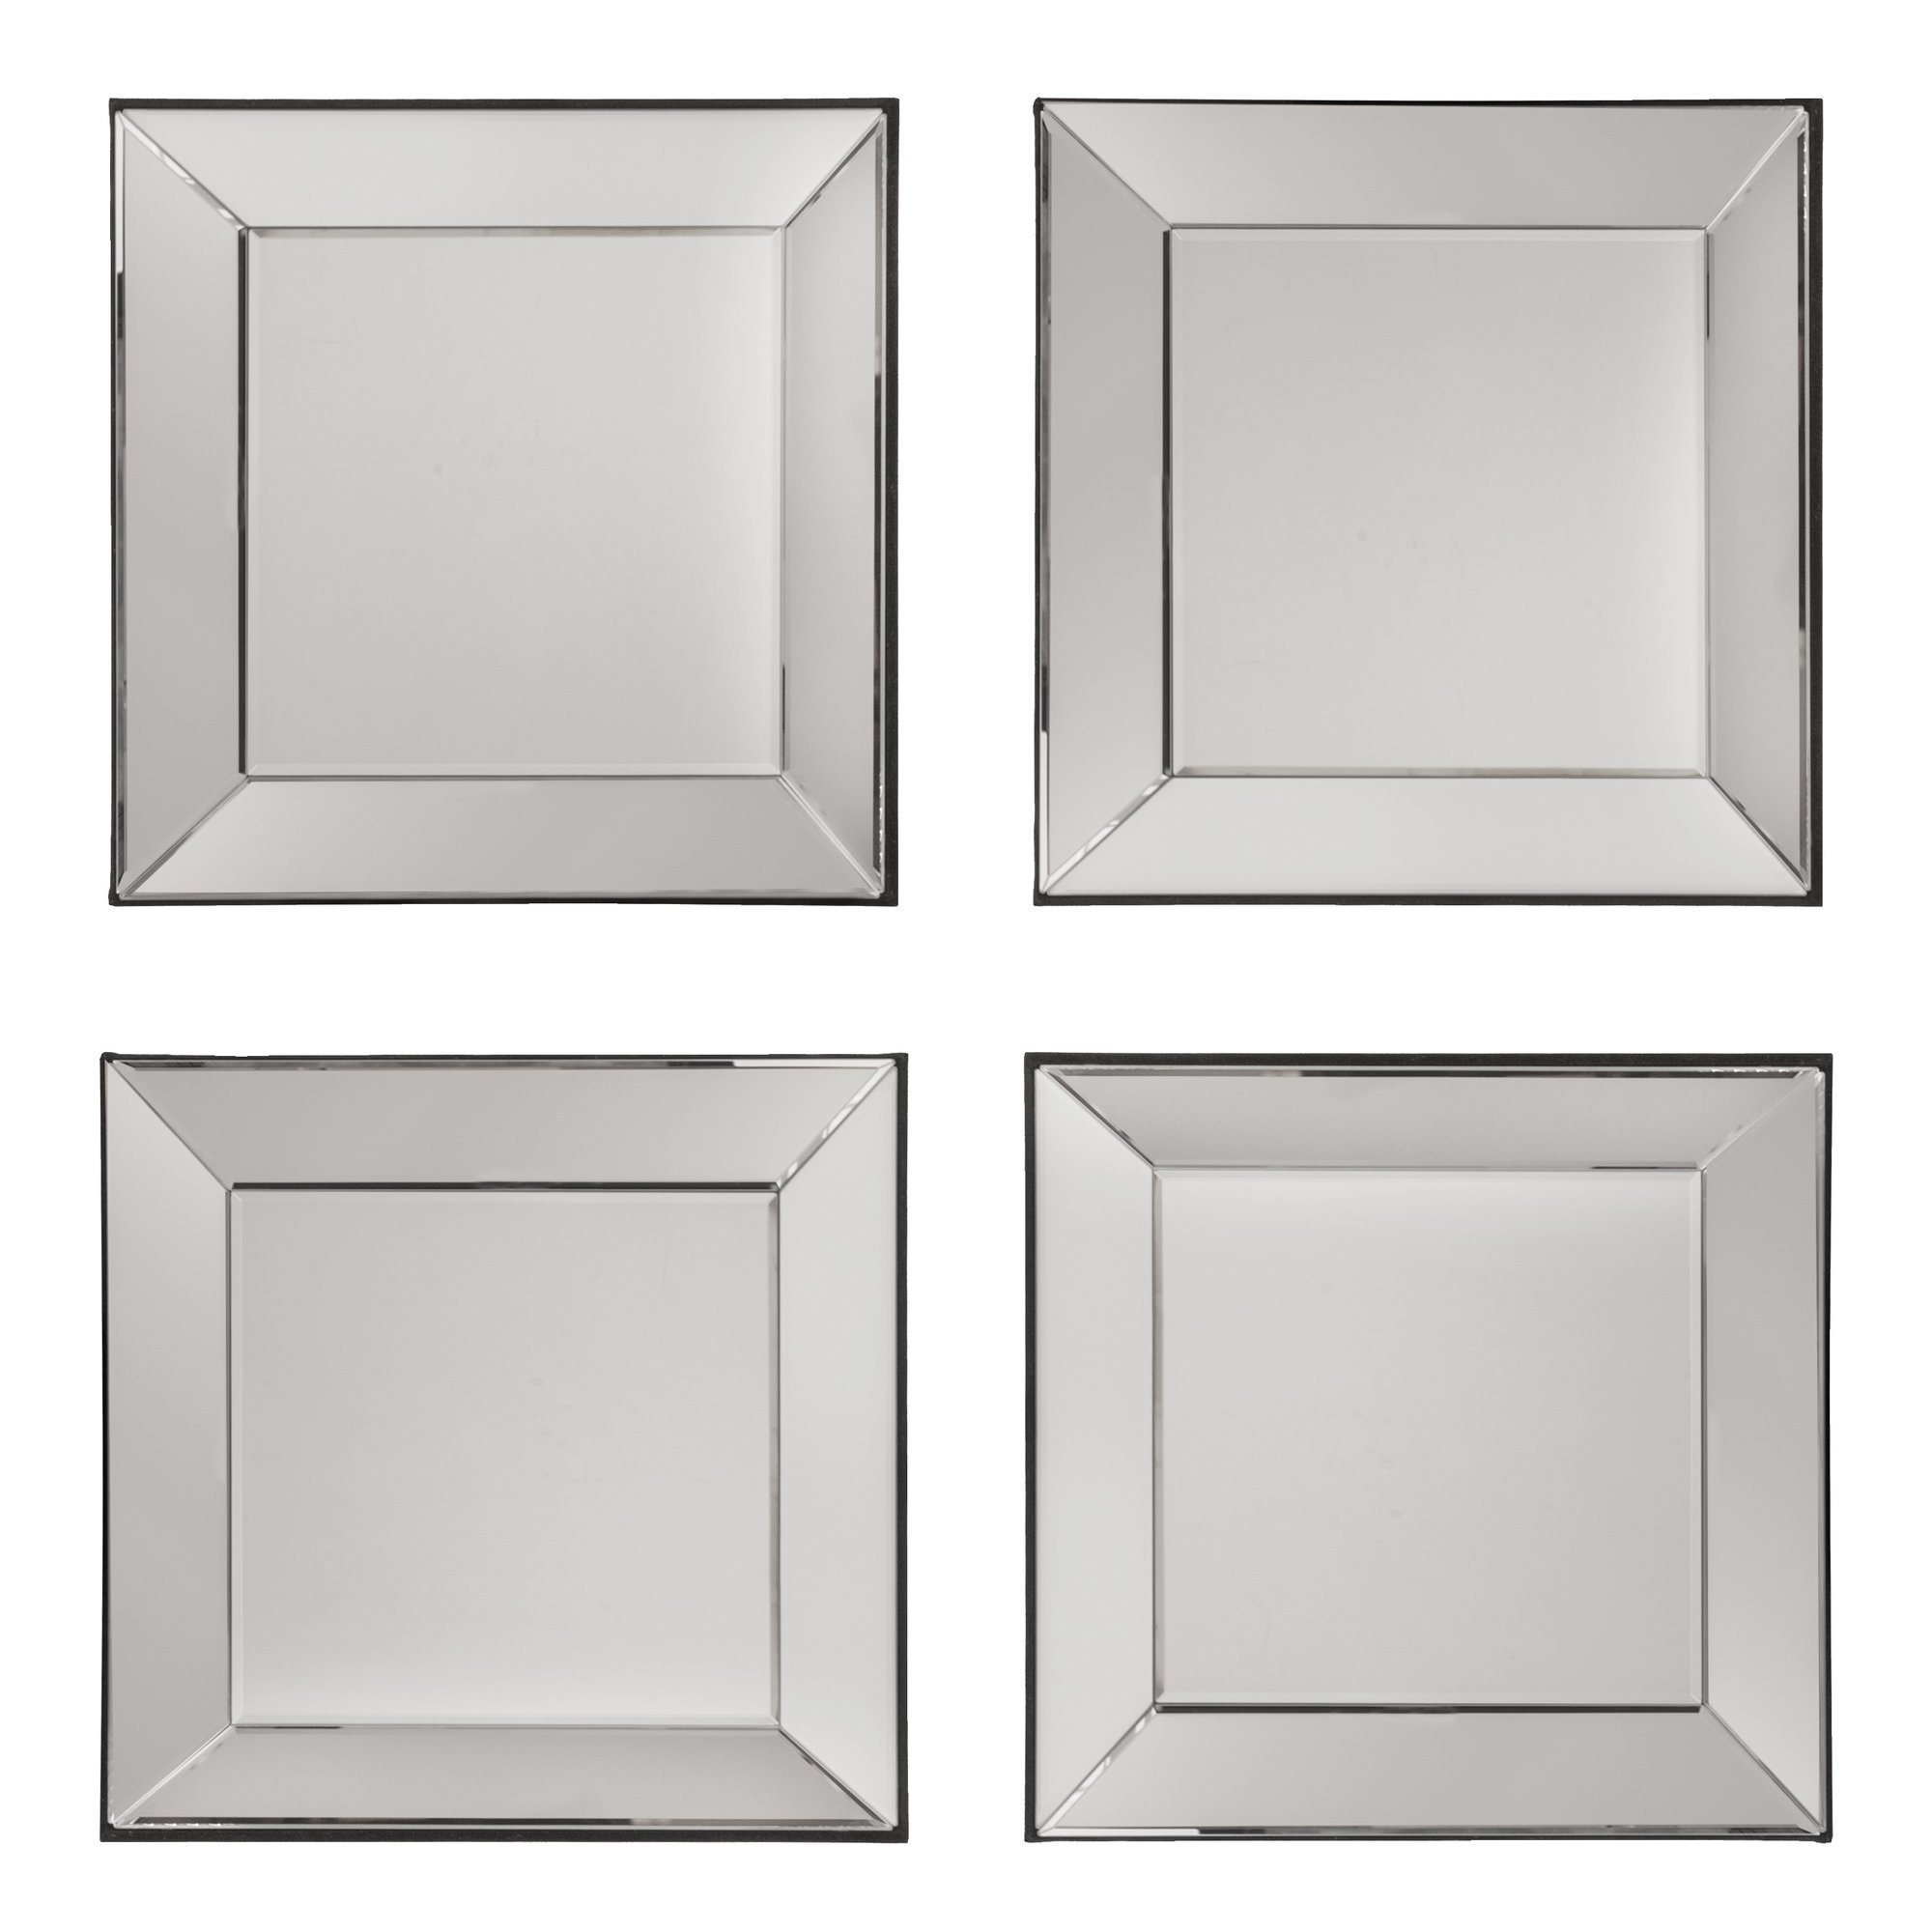 Osp Designs Decorative Square Wall Mirror Reviews Wayfair For Square Wall Mirror (Image 13 of 15)